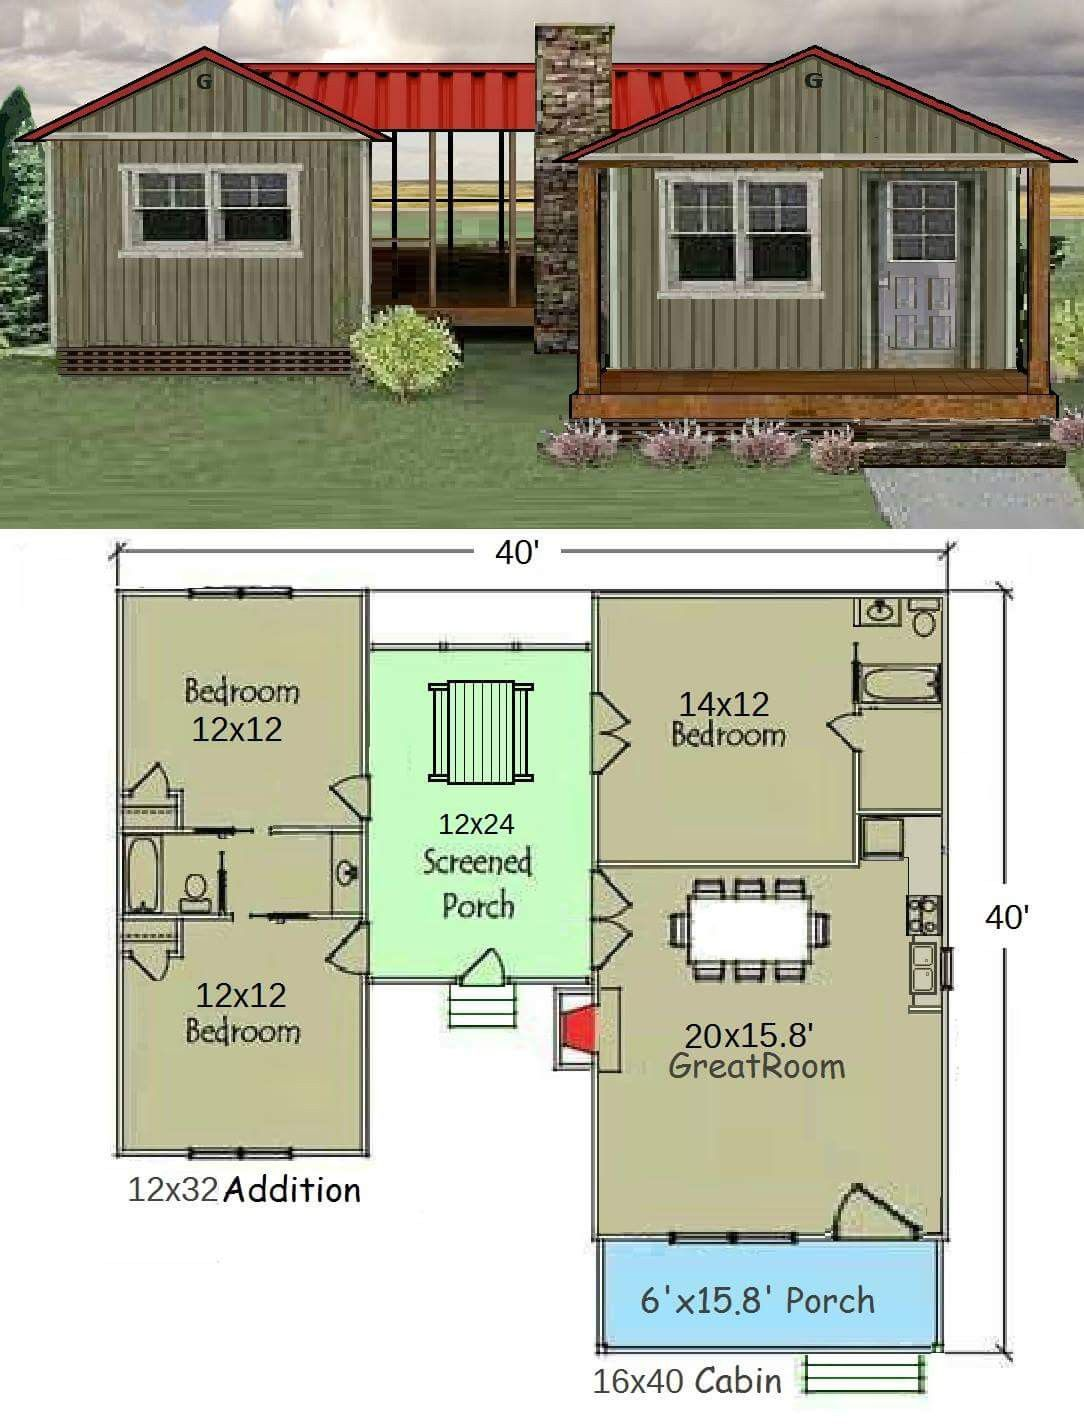 Spacious Home Using A Graceland Cabin Garden Shed Connected With A Screened Porch Shed With Porch House Plans Tiny House Cabin